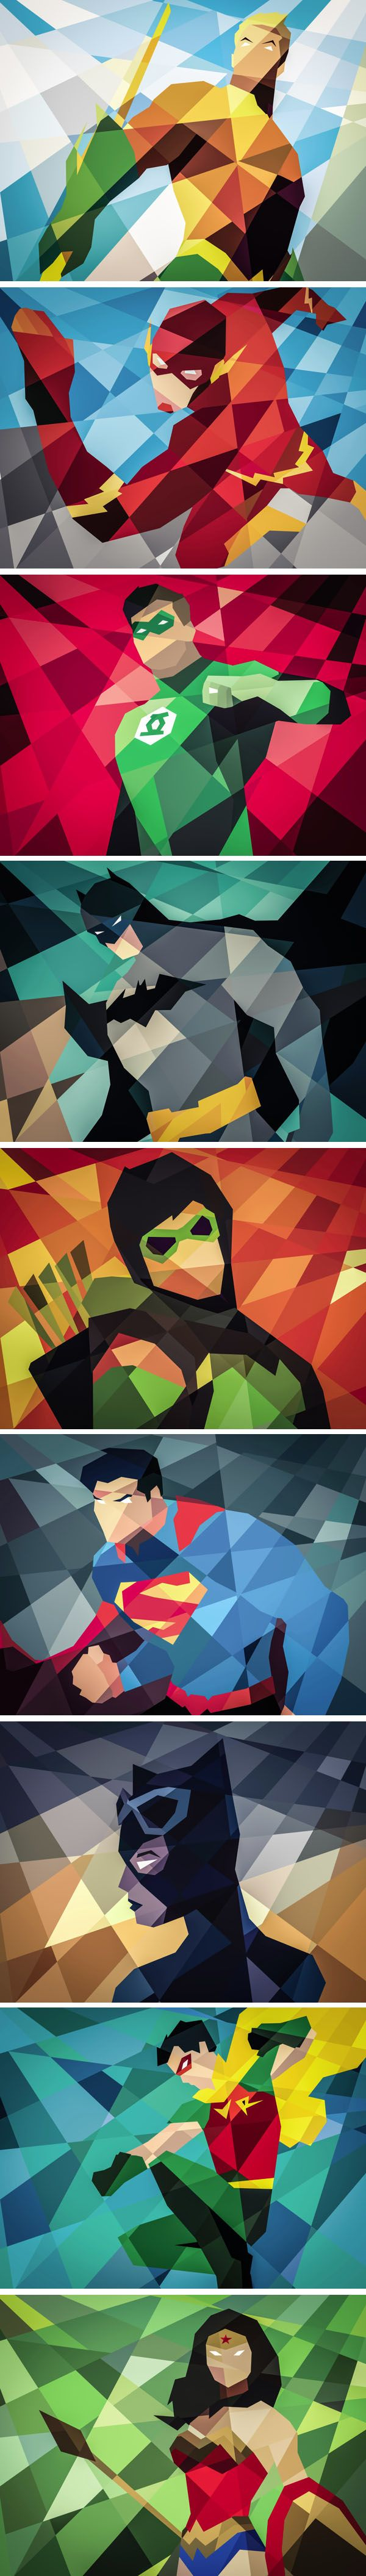 DC Comics goes Geometric, series by Eric Dufresne on Behance